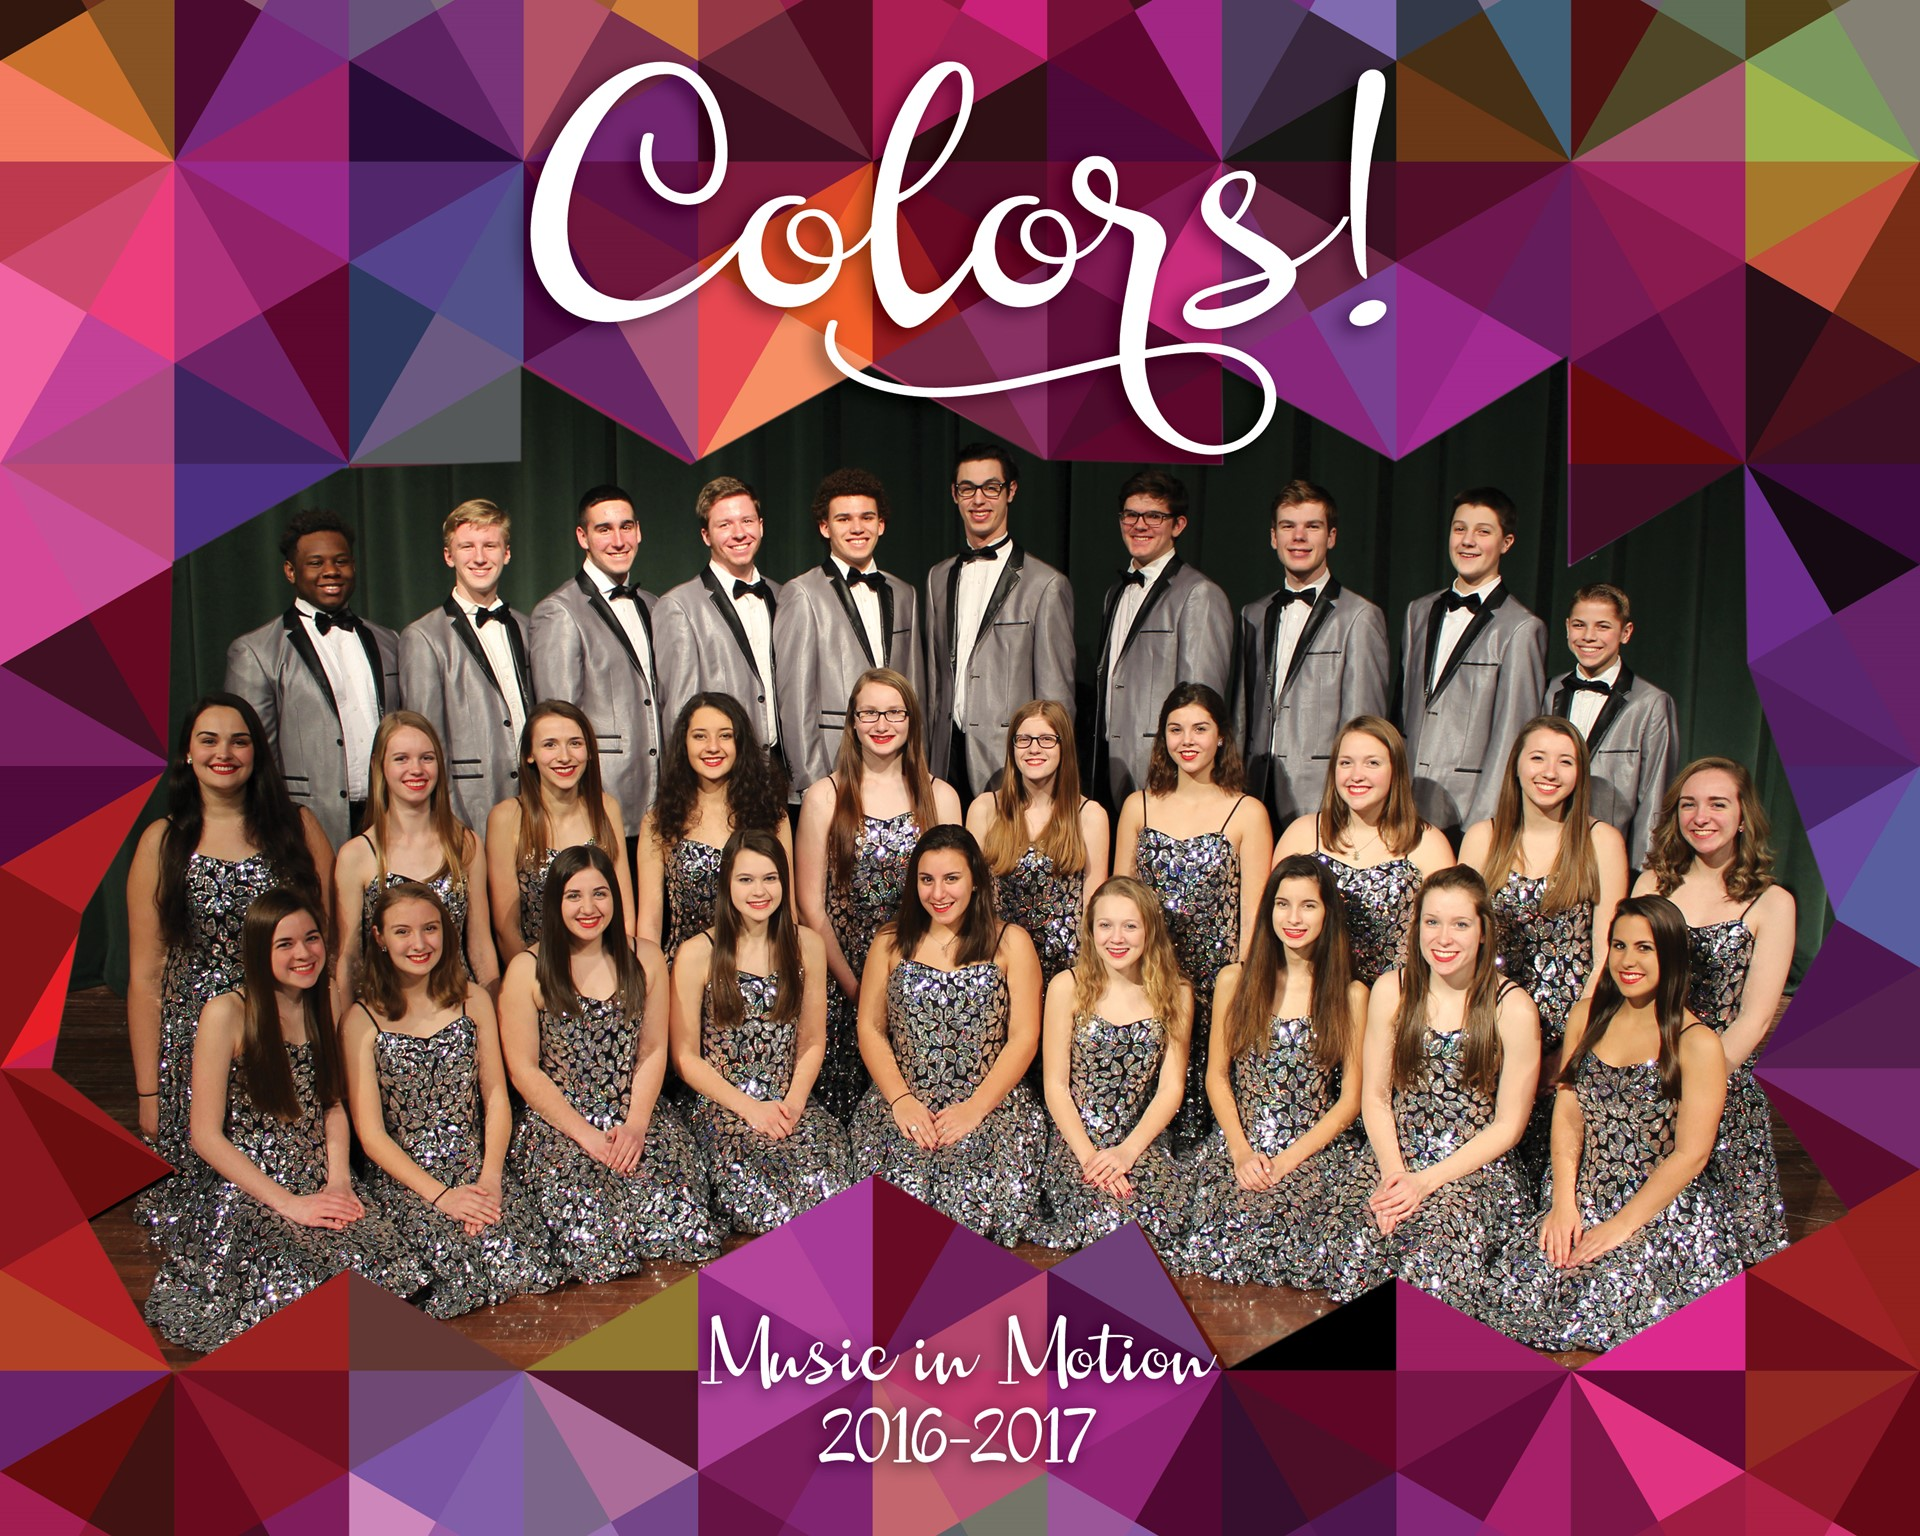 Music in Motion 2016-17